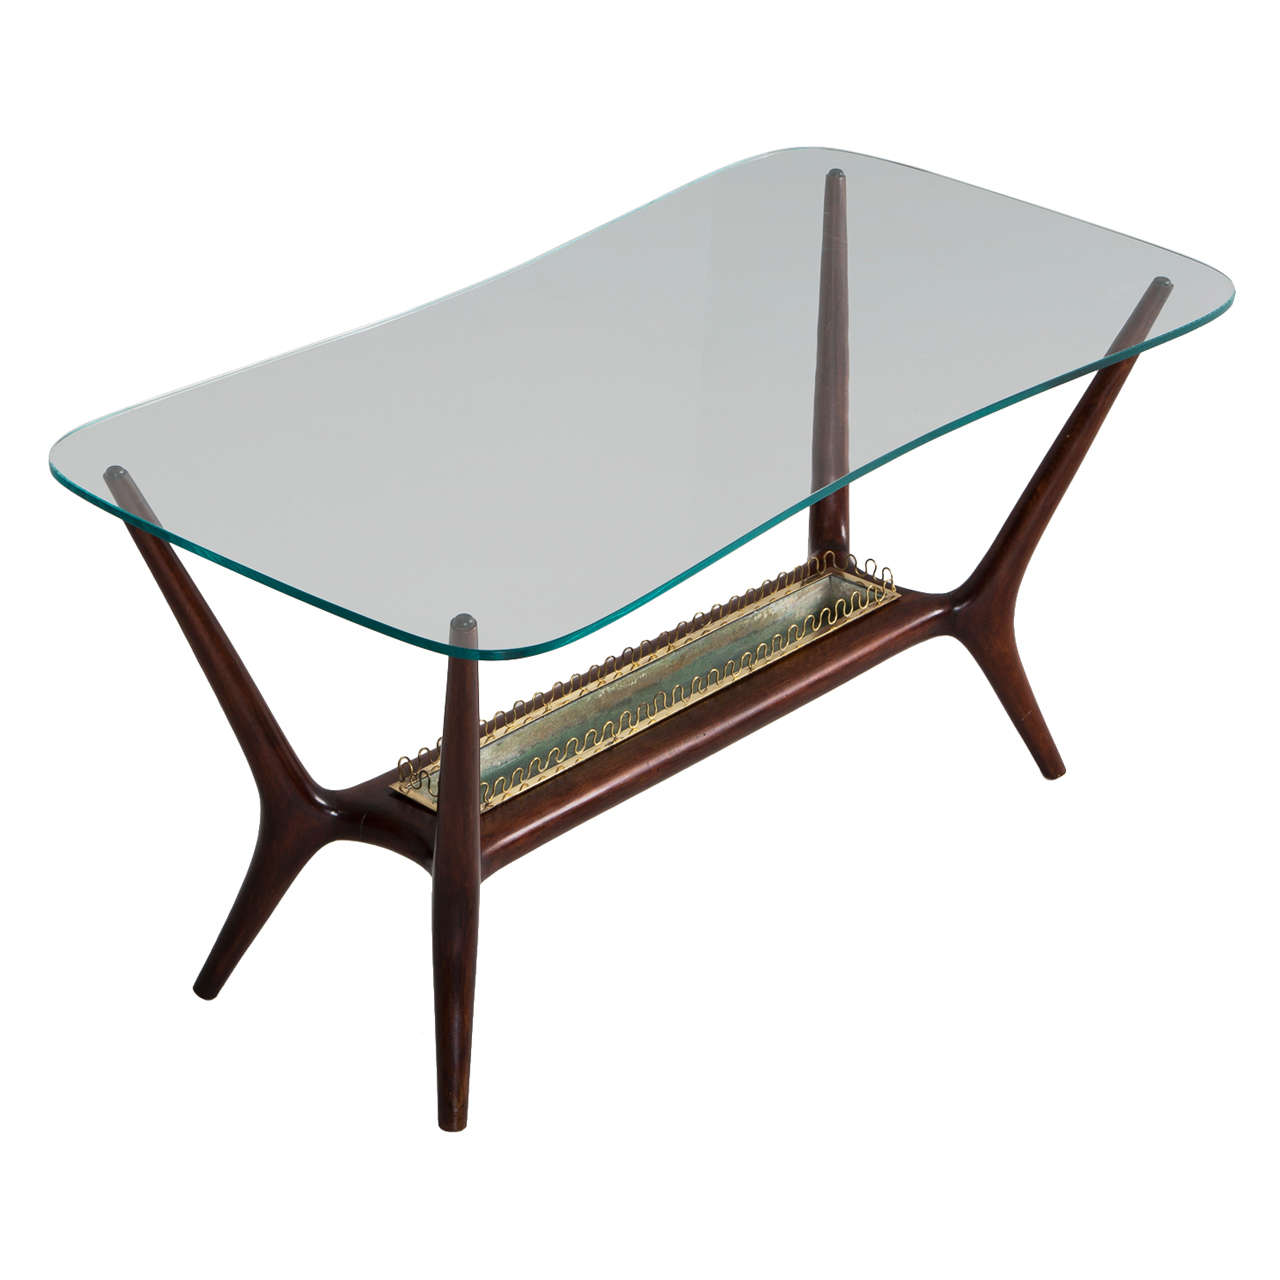 Italian cocktail table with curved glass top